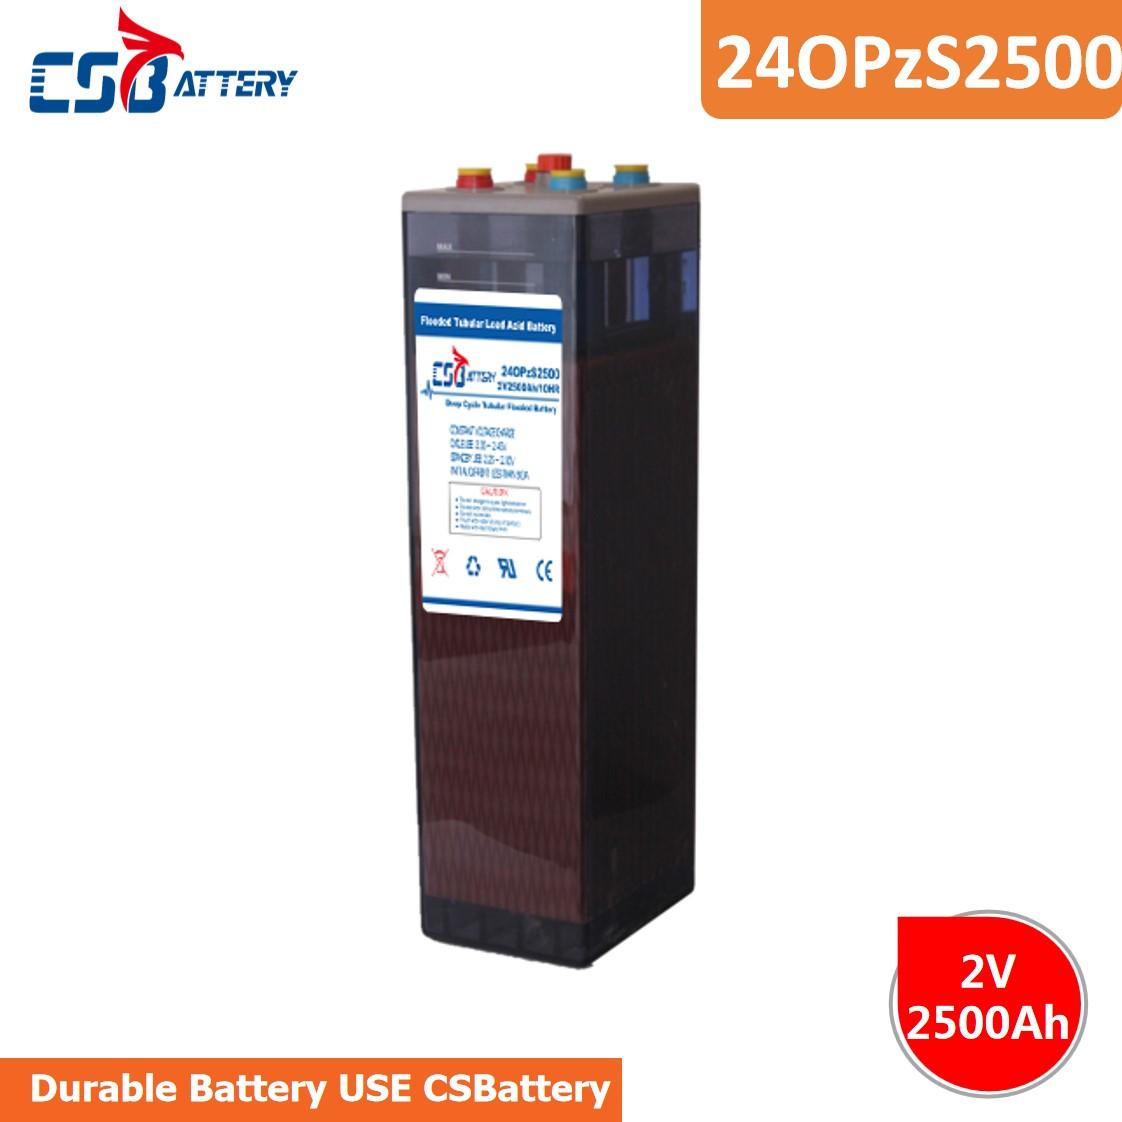 Csbattery 2V2000ah Solar Storage Opzs Battery for MarineAutomotiveSolarWindPowerSystems